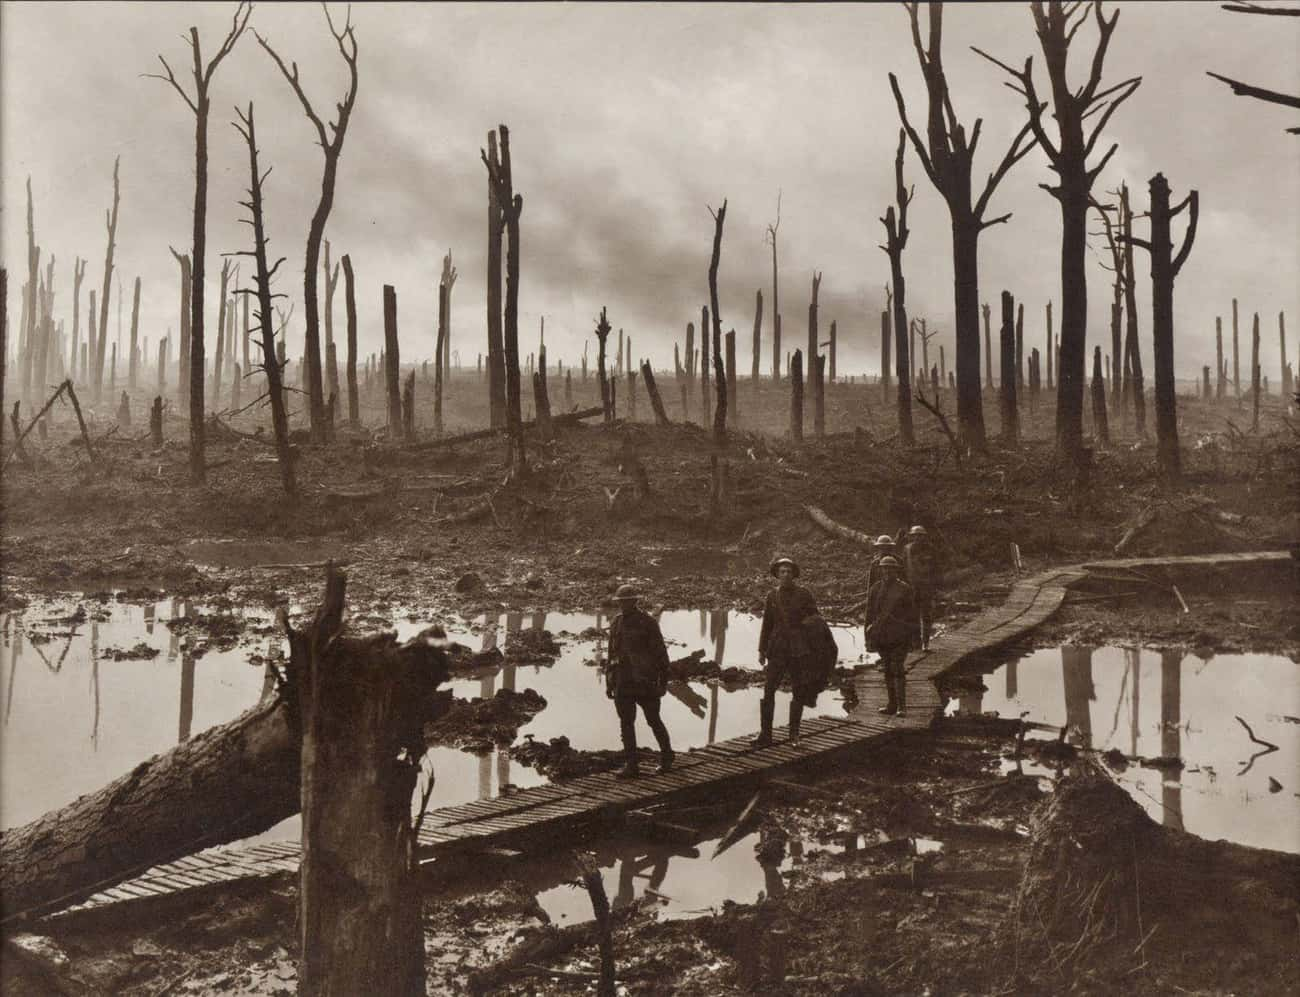 Australian Brigade Passing Thr is listed (or ranked) 1 on the list Haunting Combat Photography From WWI